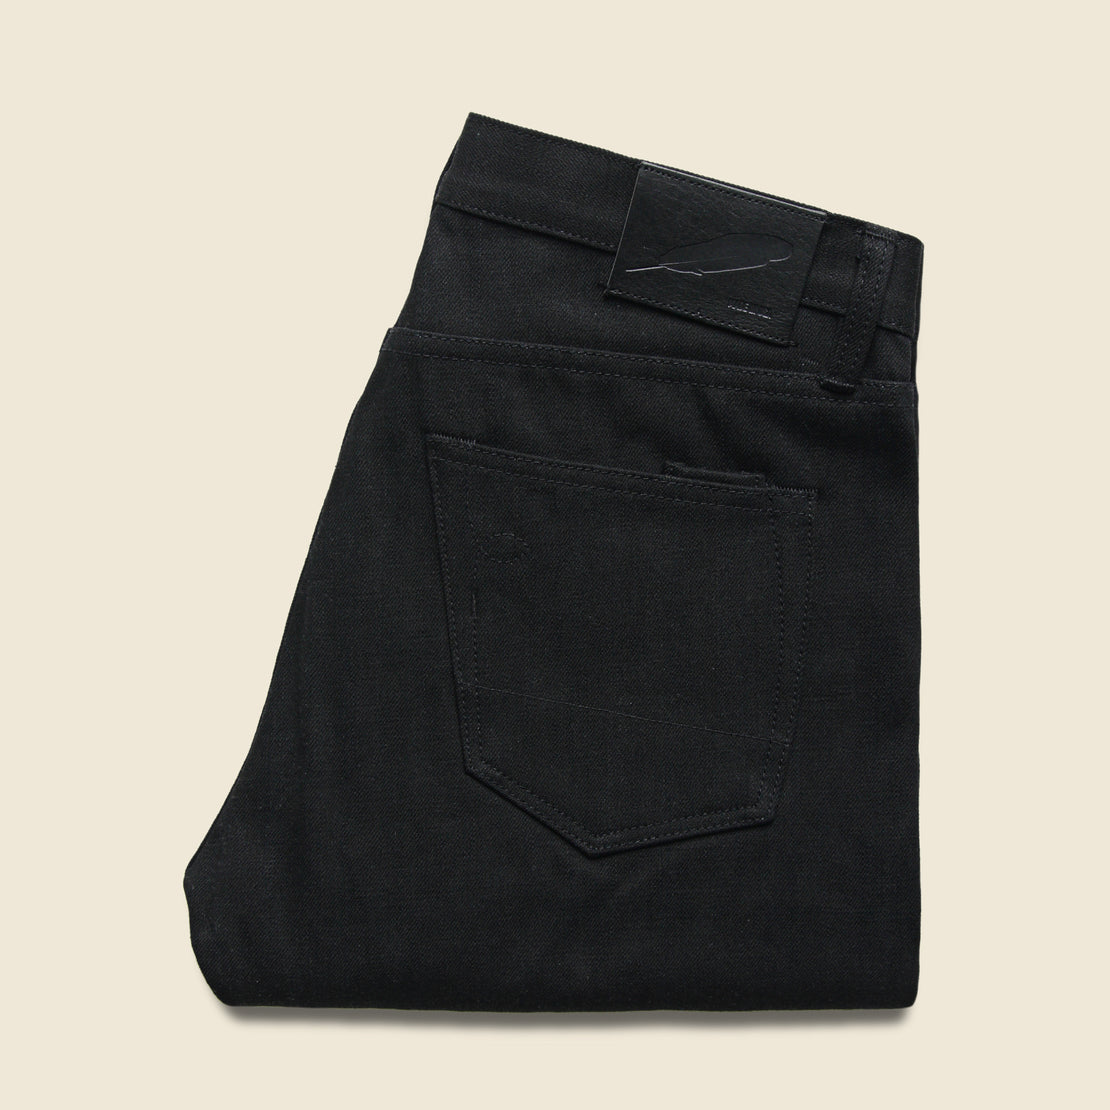 Stanton 15oz - Stealth Black - Rogue Territory - STAG Provisions - Pants - Denim